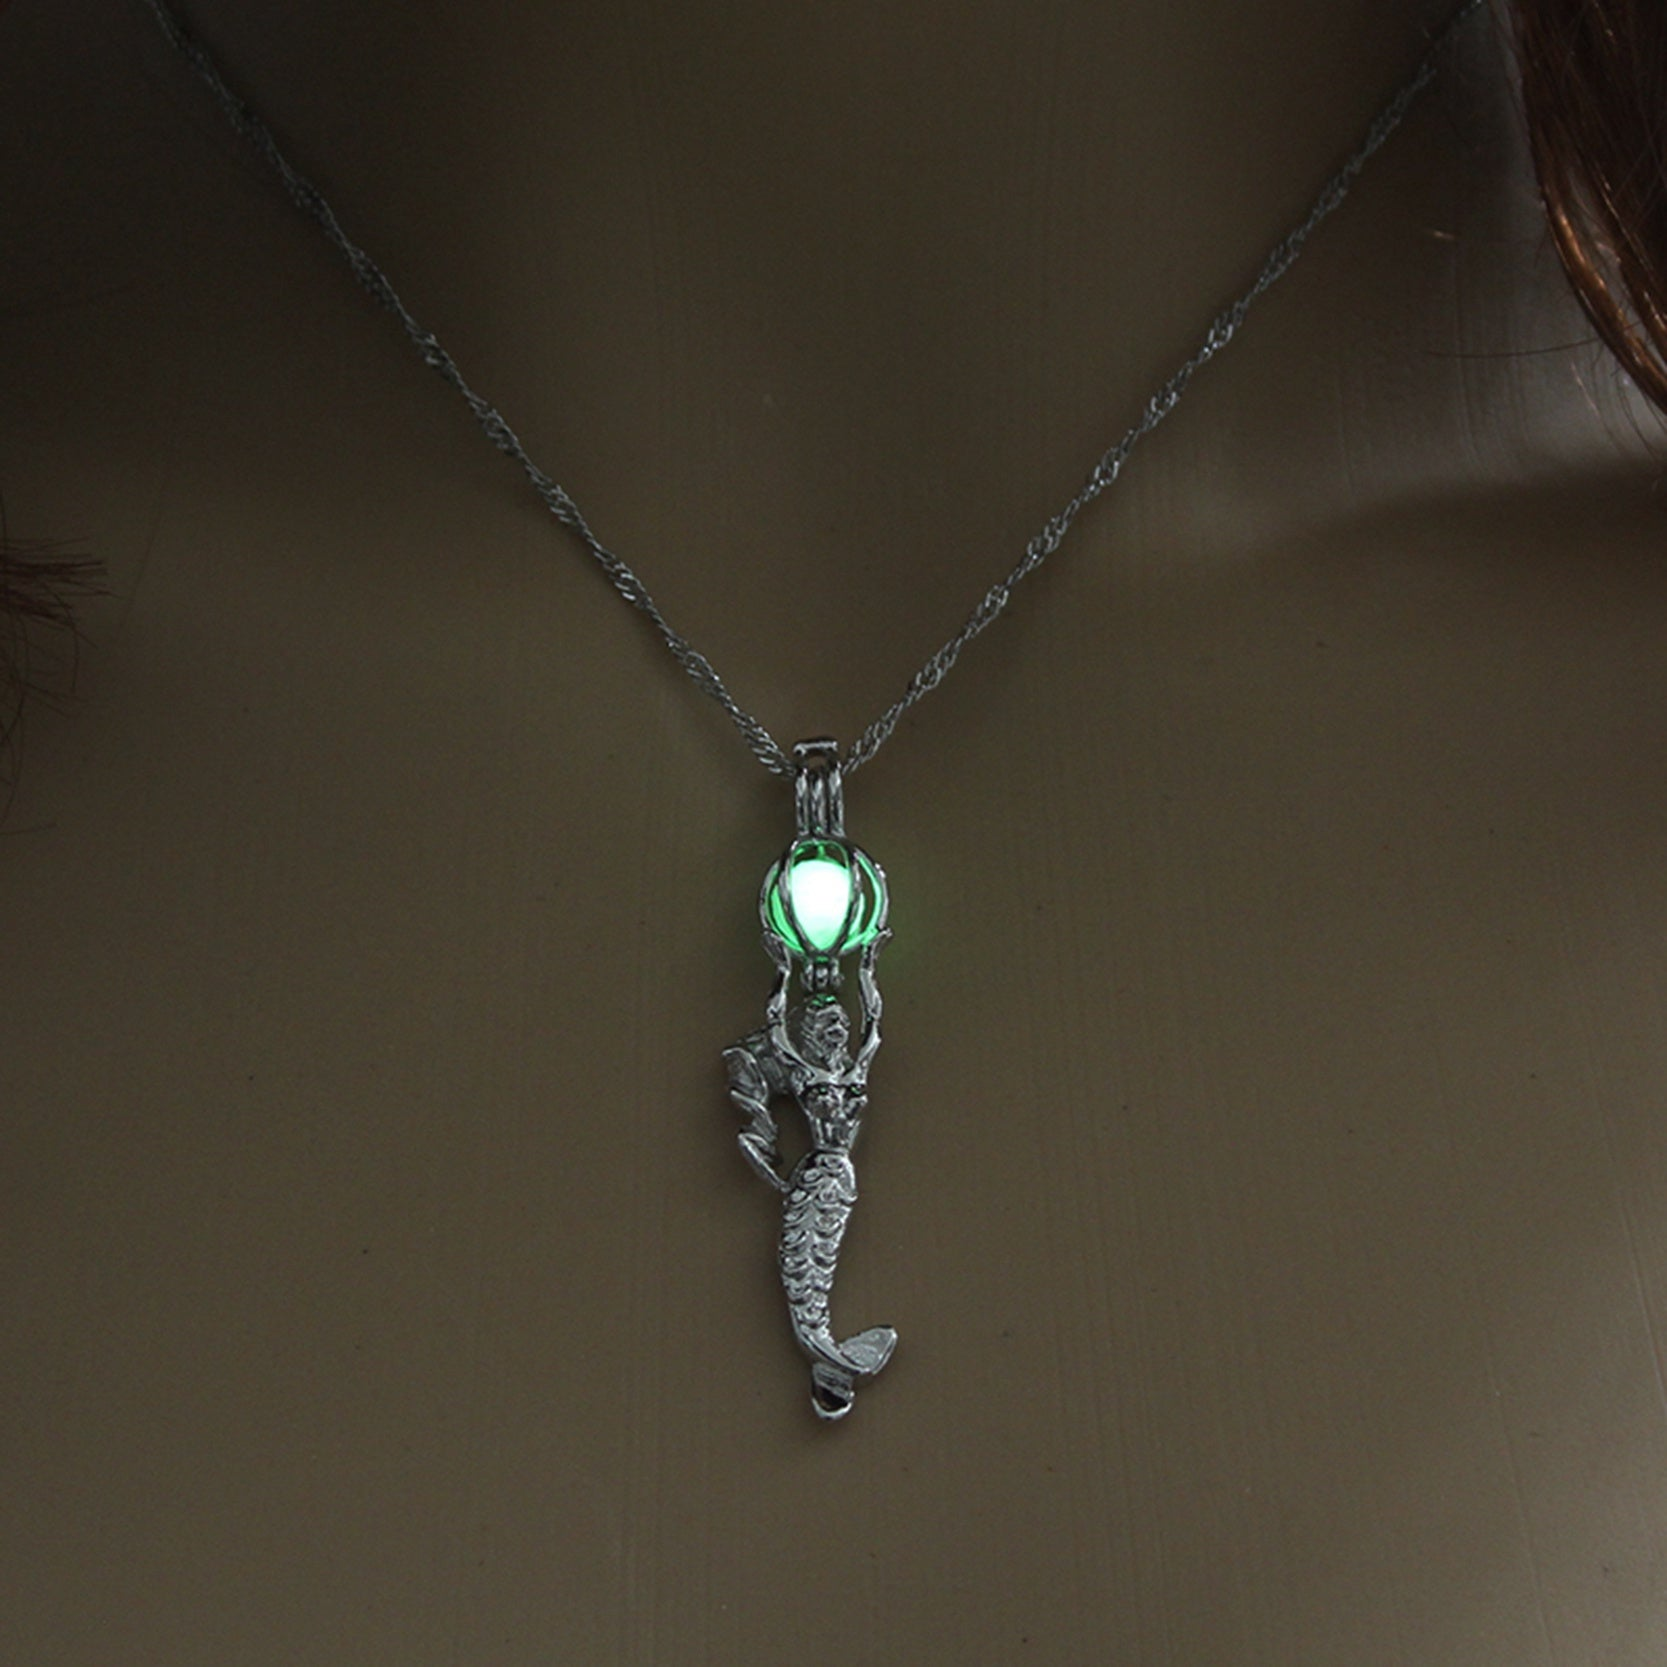 Summer Jewelry Mermaid Pendant Necklace Glow in the Dark Choker Necklace 3 Colors Luminous For Women Gift Silver Color Chain